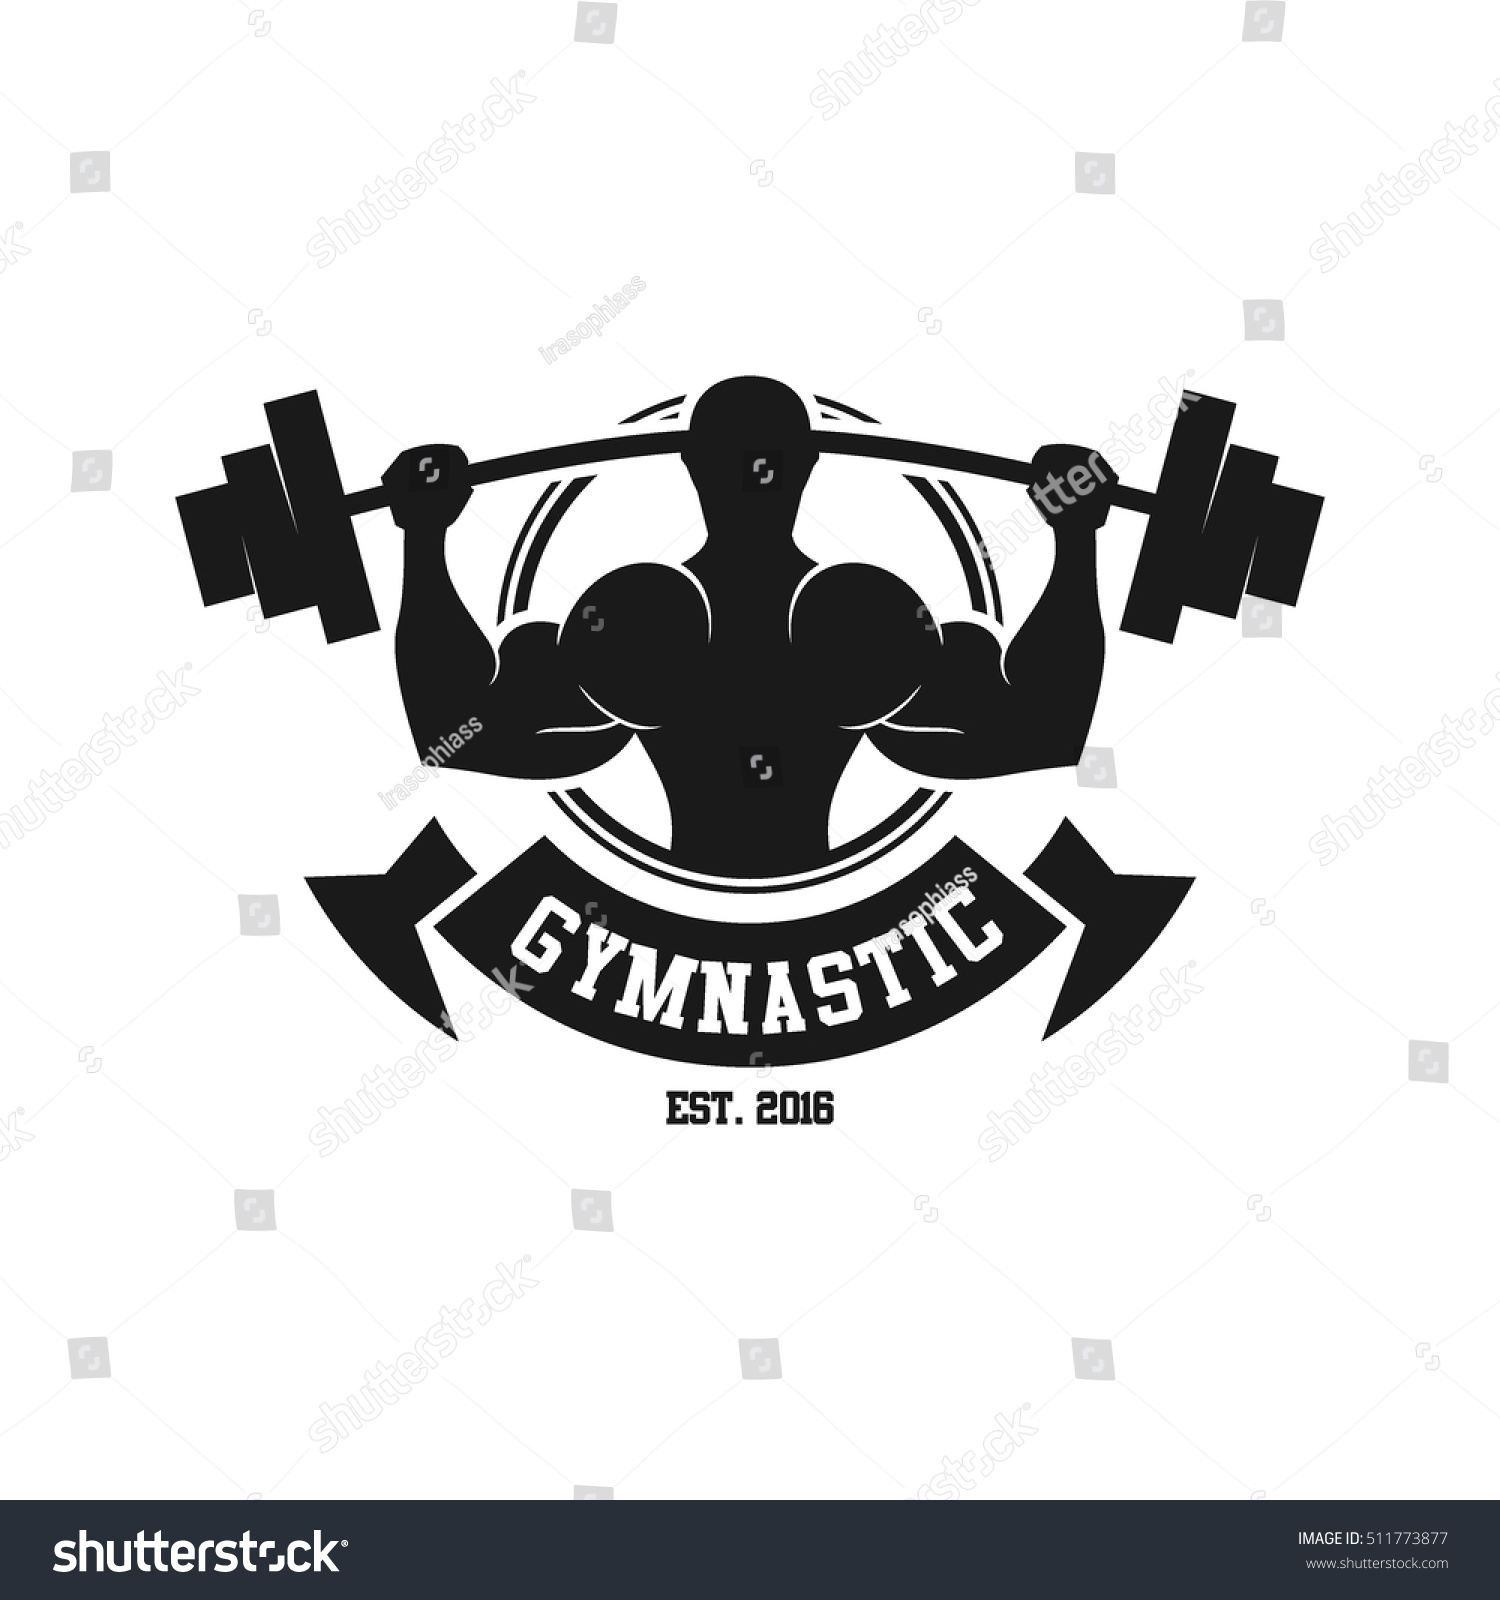 Royalty-free Gym logo, fitness logo #511773877 Stock Photo ... for Gym Logo Pictures  110ylc